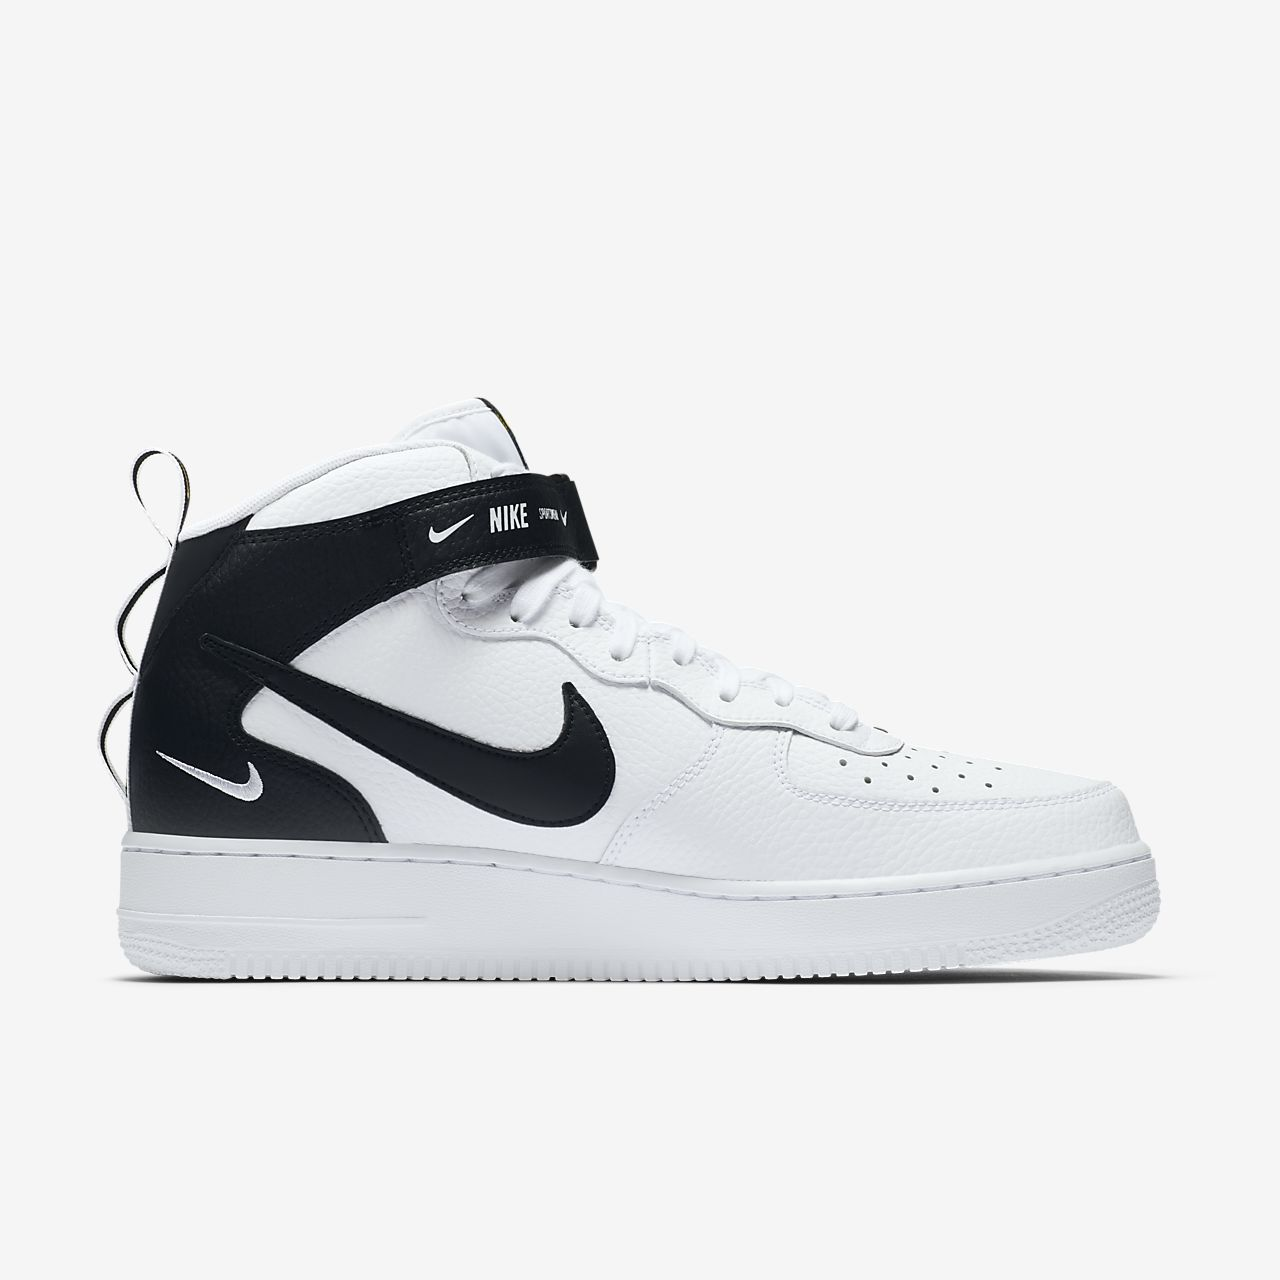 wholesale dealer eddbe 19a4b Men s Shoe. Nike Air Force 1 07 Mid LV8